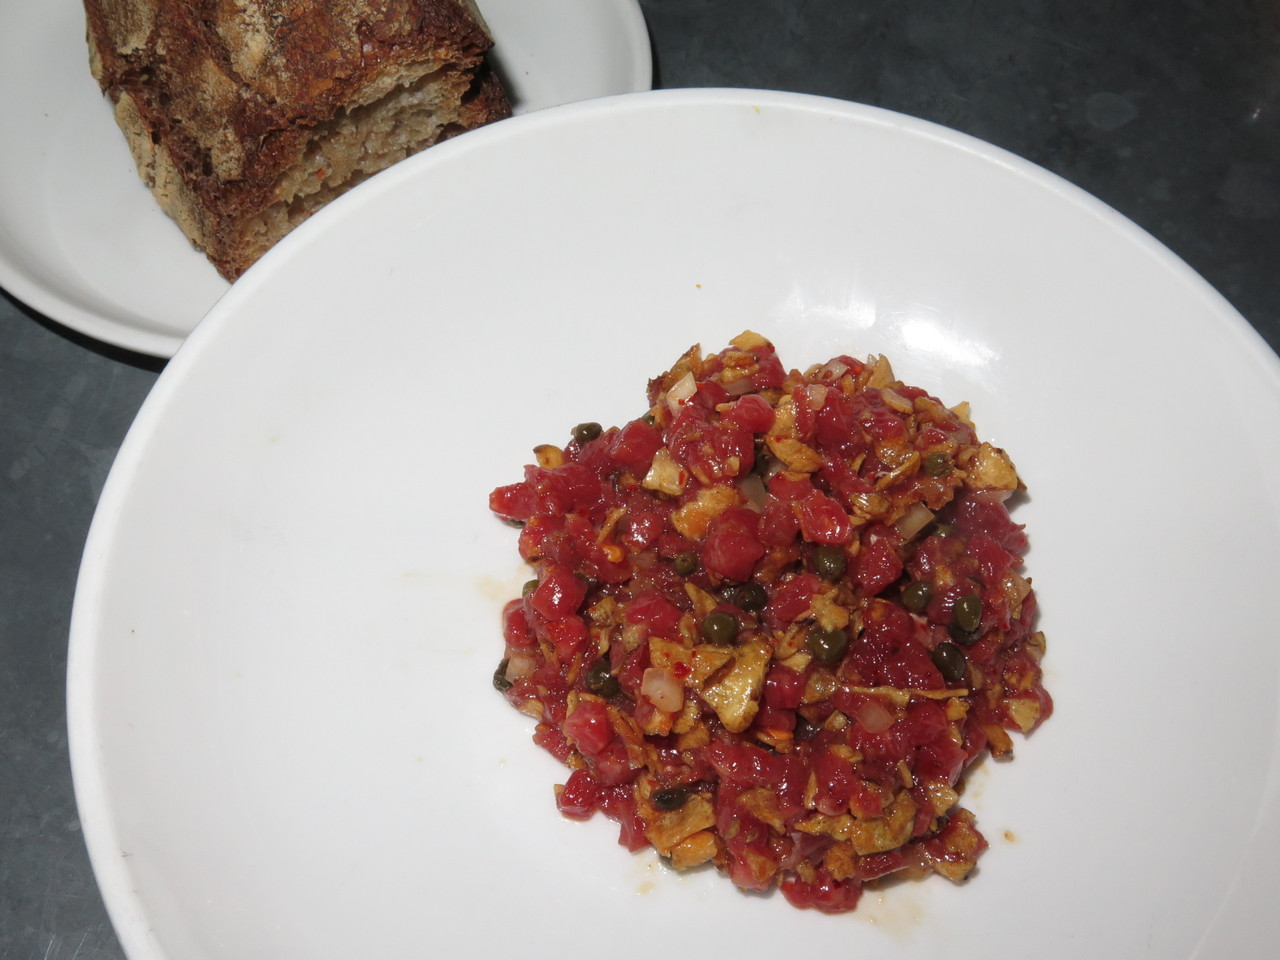 Beef tartare with sunchoke